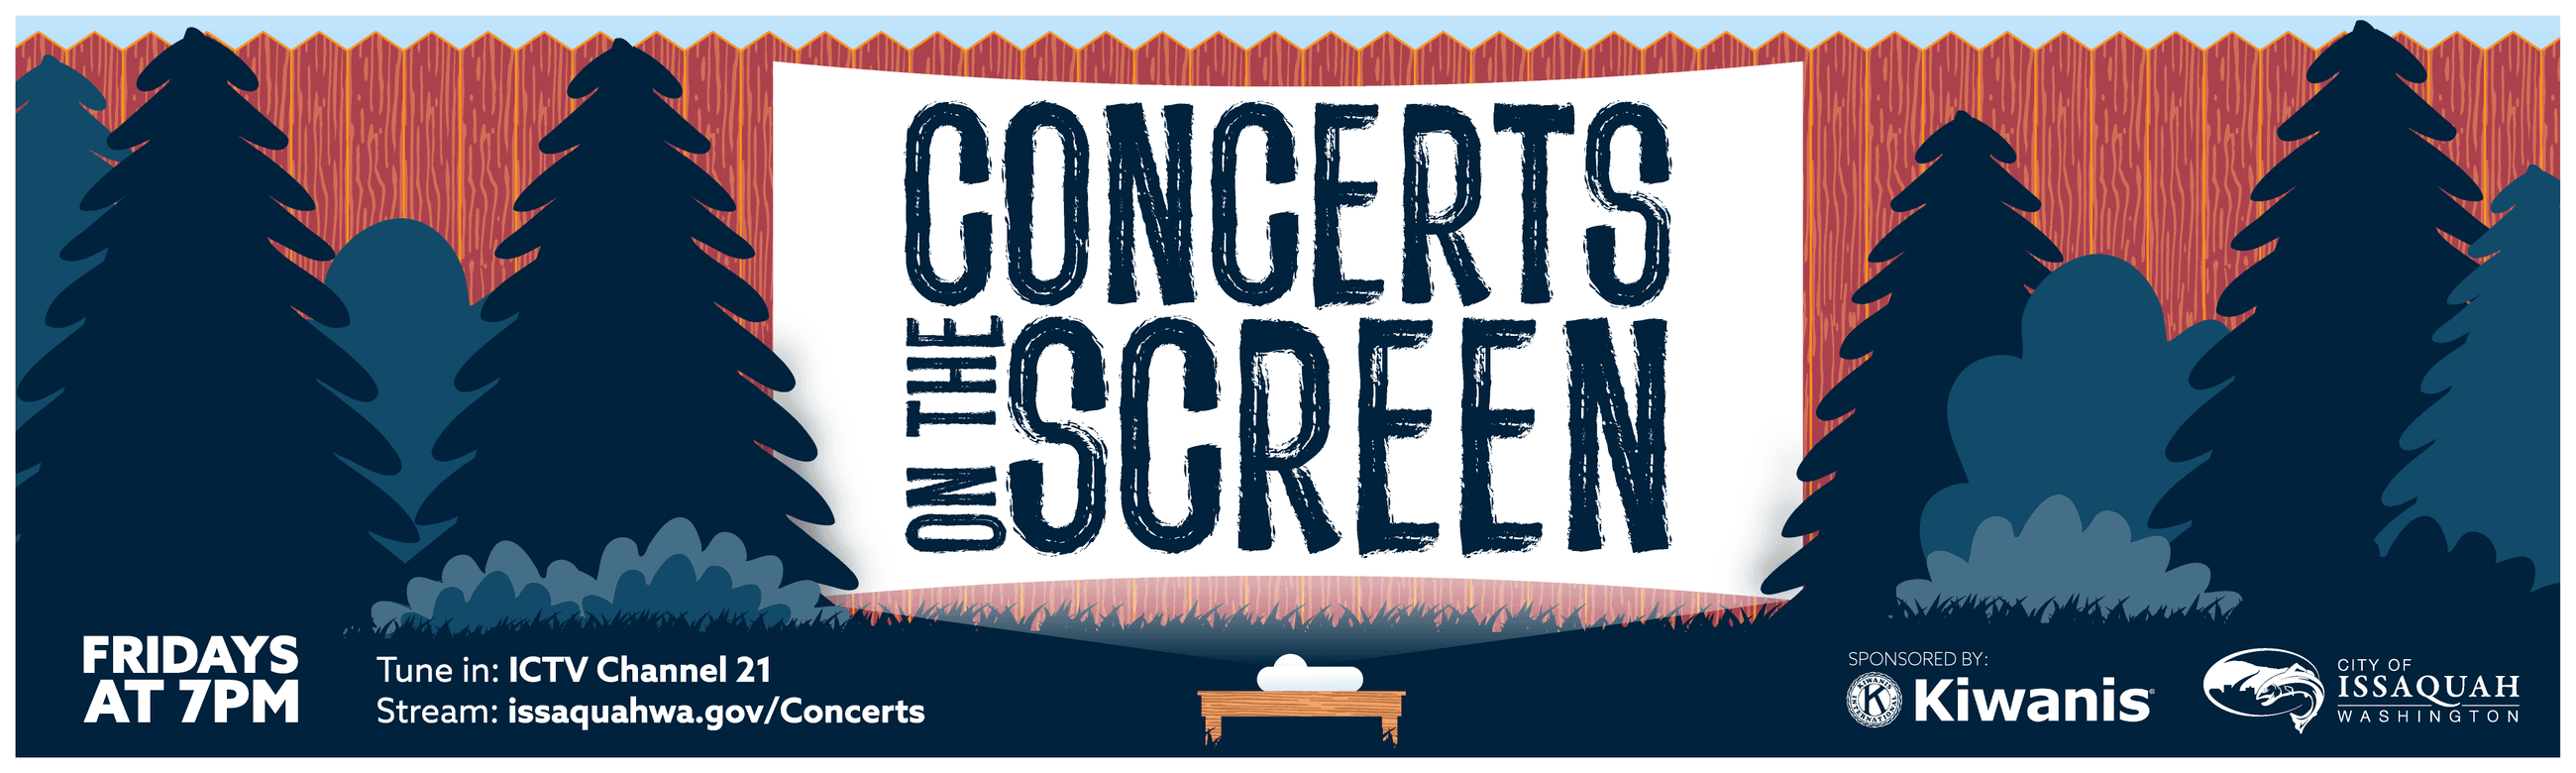 Concerts on the Screen